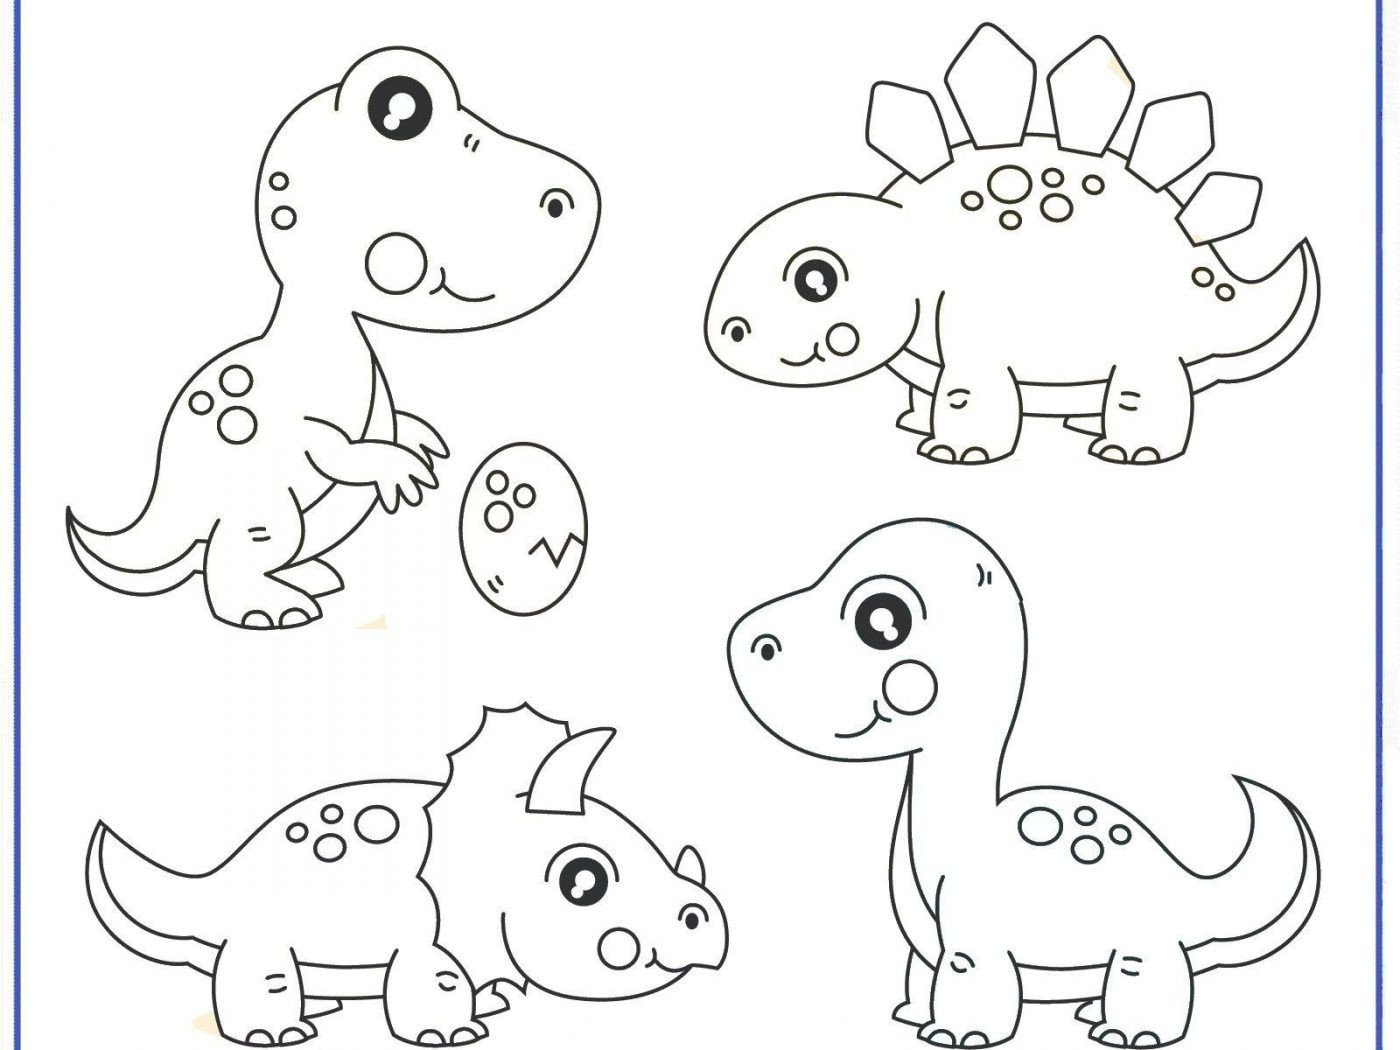 Dinosaur Worksheets for Preschoolers Printable Dinosaur Coloring Dinosaurg Preschool